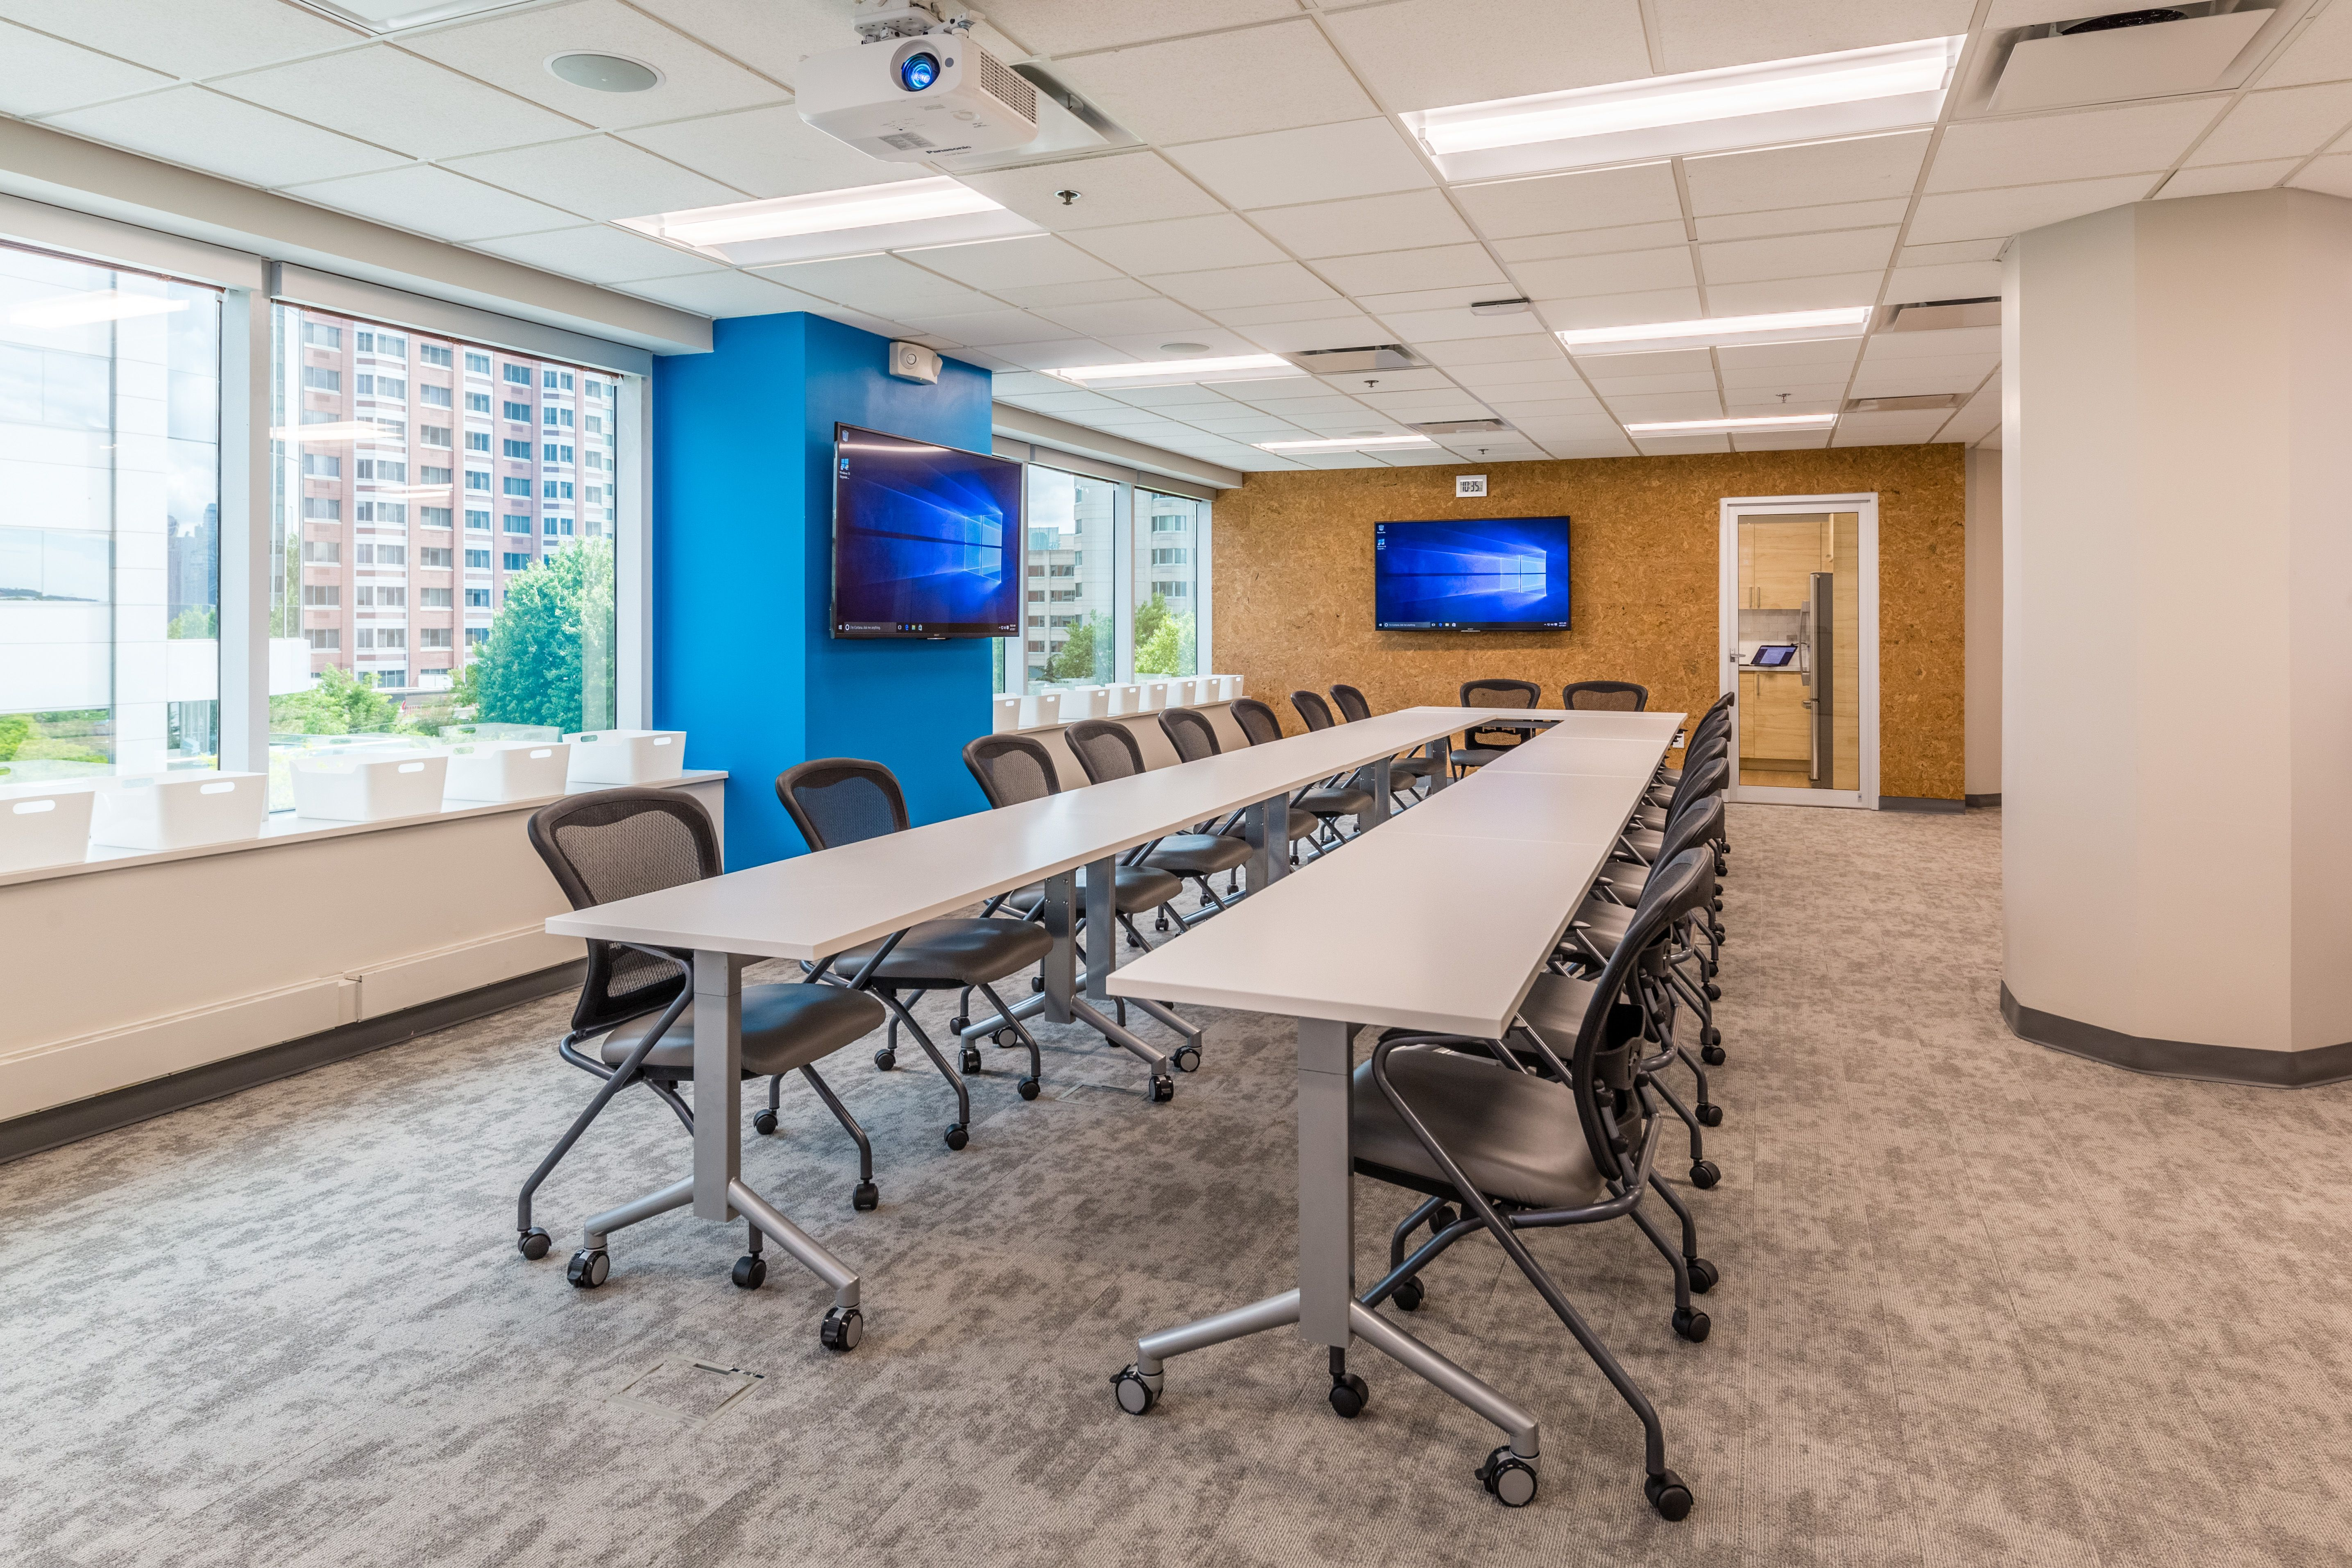 Worksocial Offers Well Designed Shared Office Spaces For Rent In New Jersey With Free Wifi Meeting Rooms Ca Shared Office Space Shared Office Coworking Space